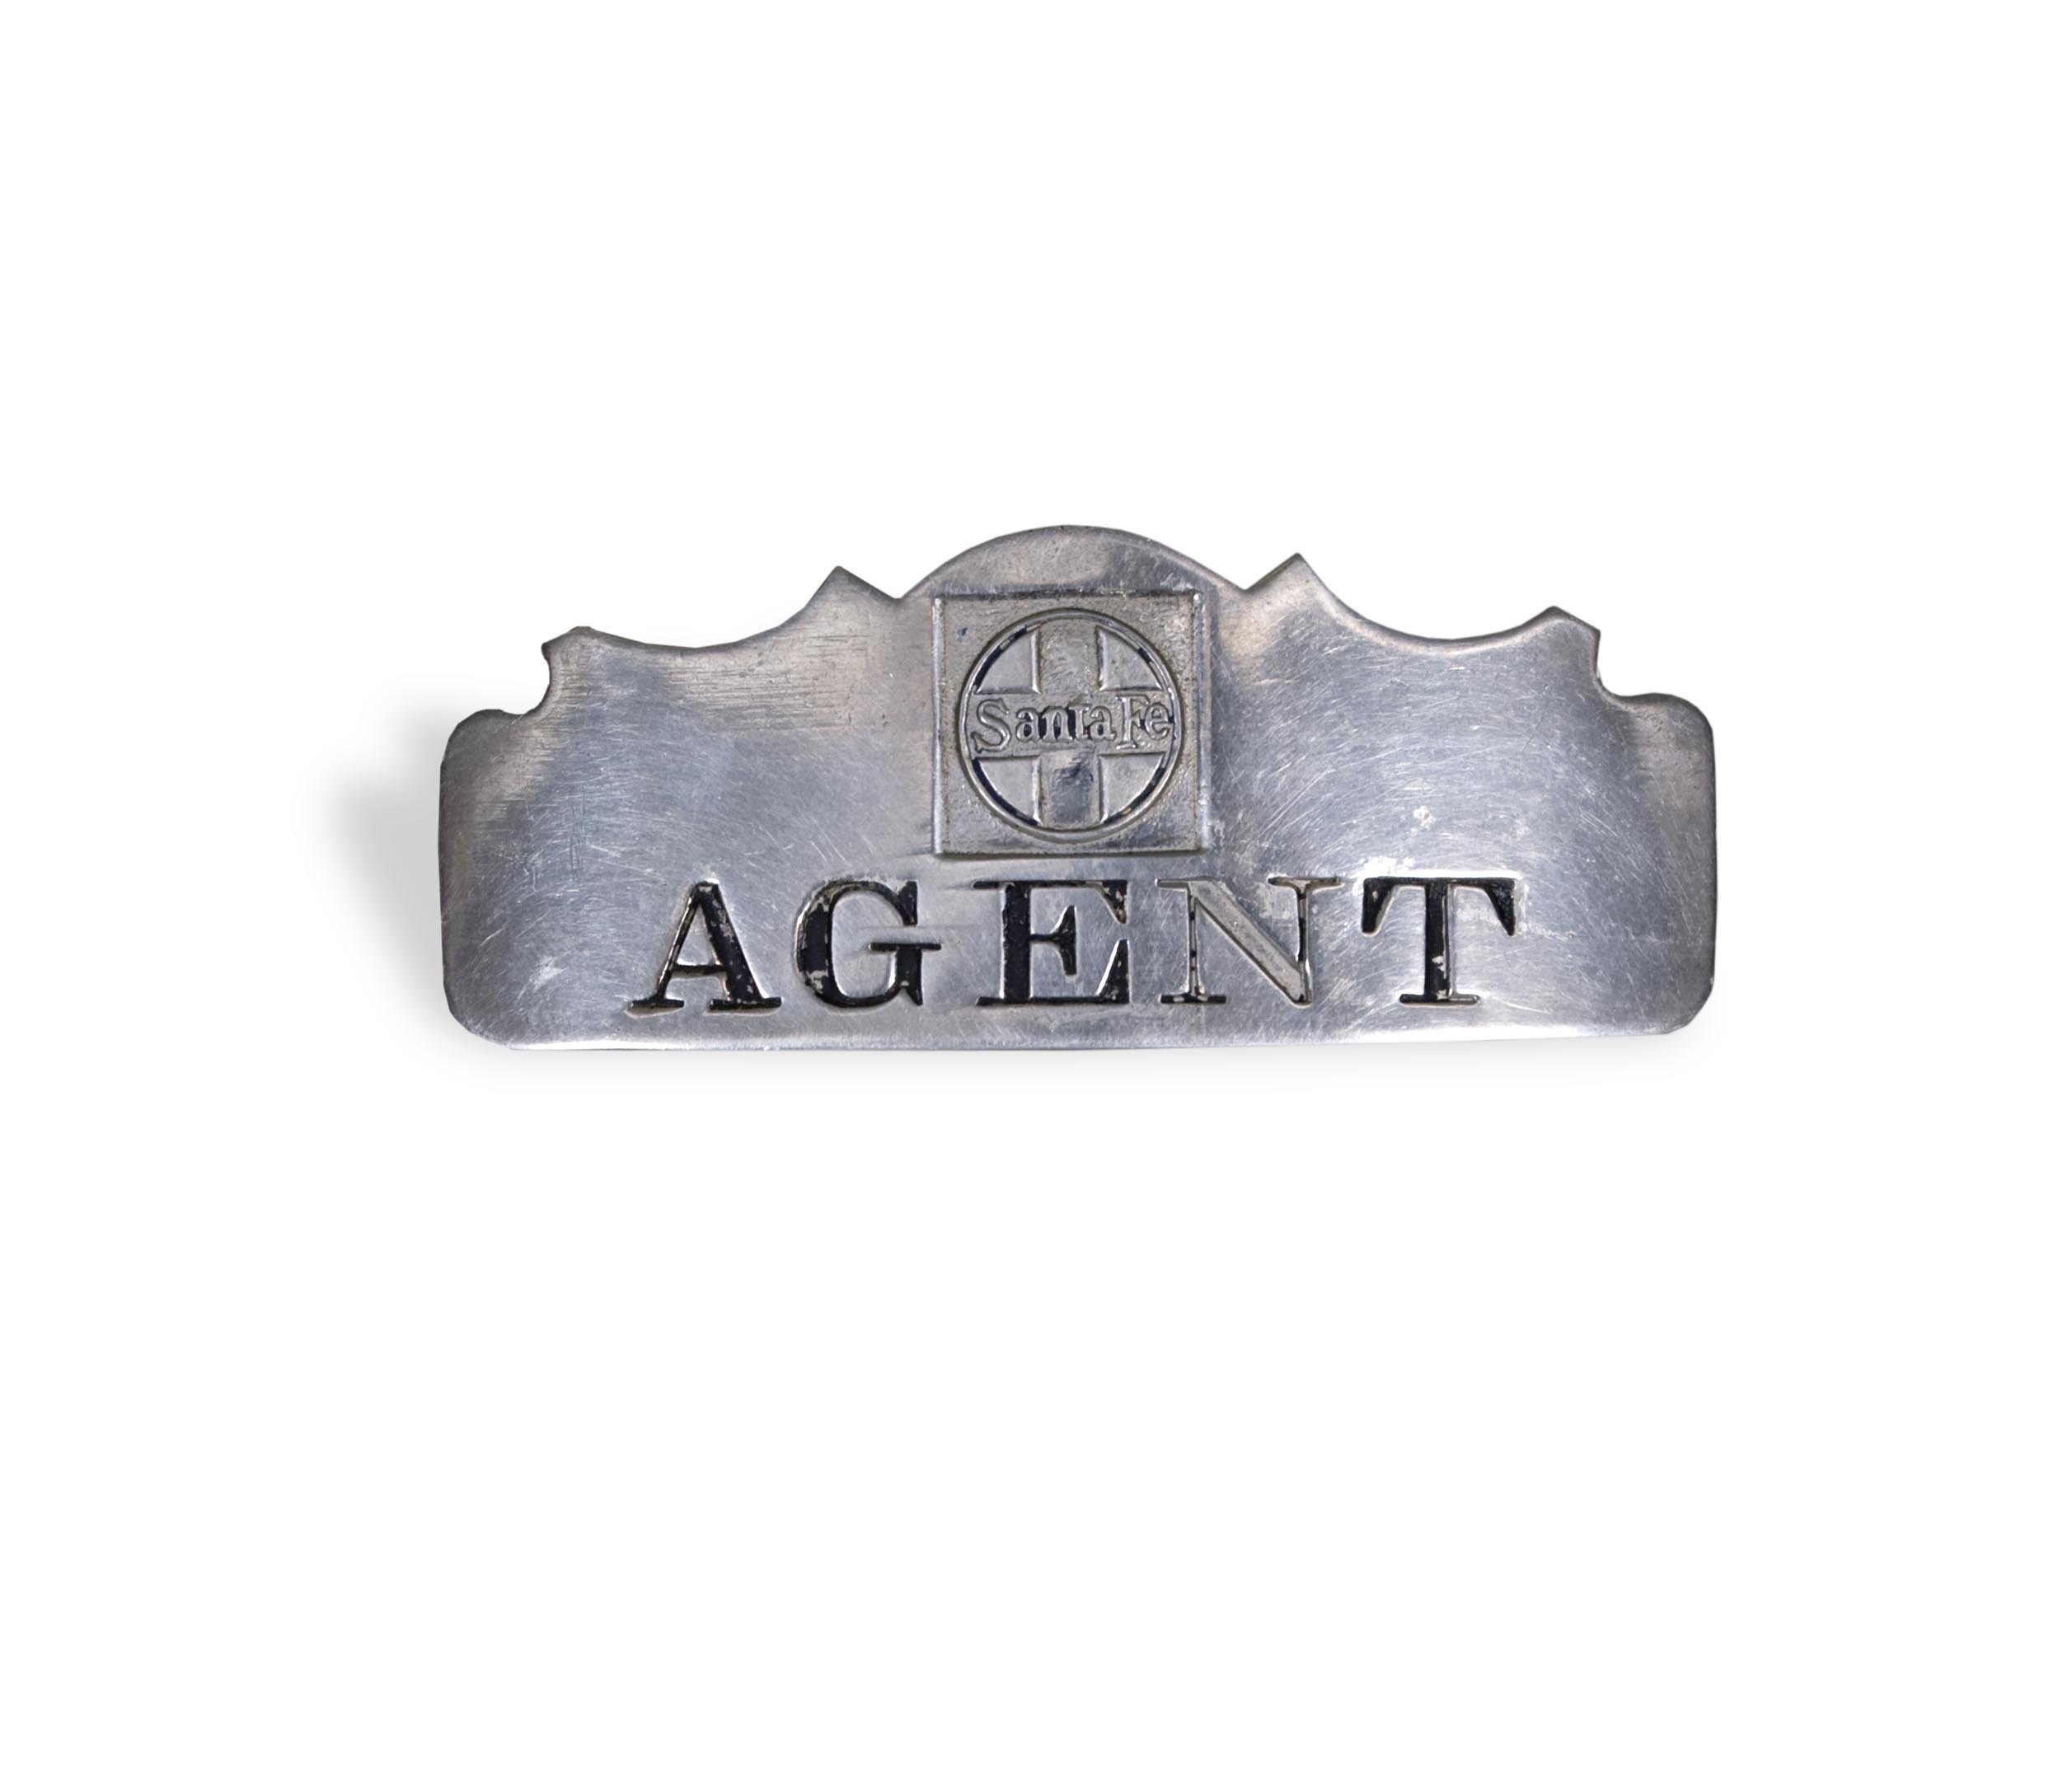 Railroad agent badge